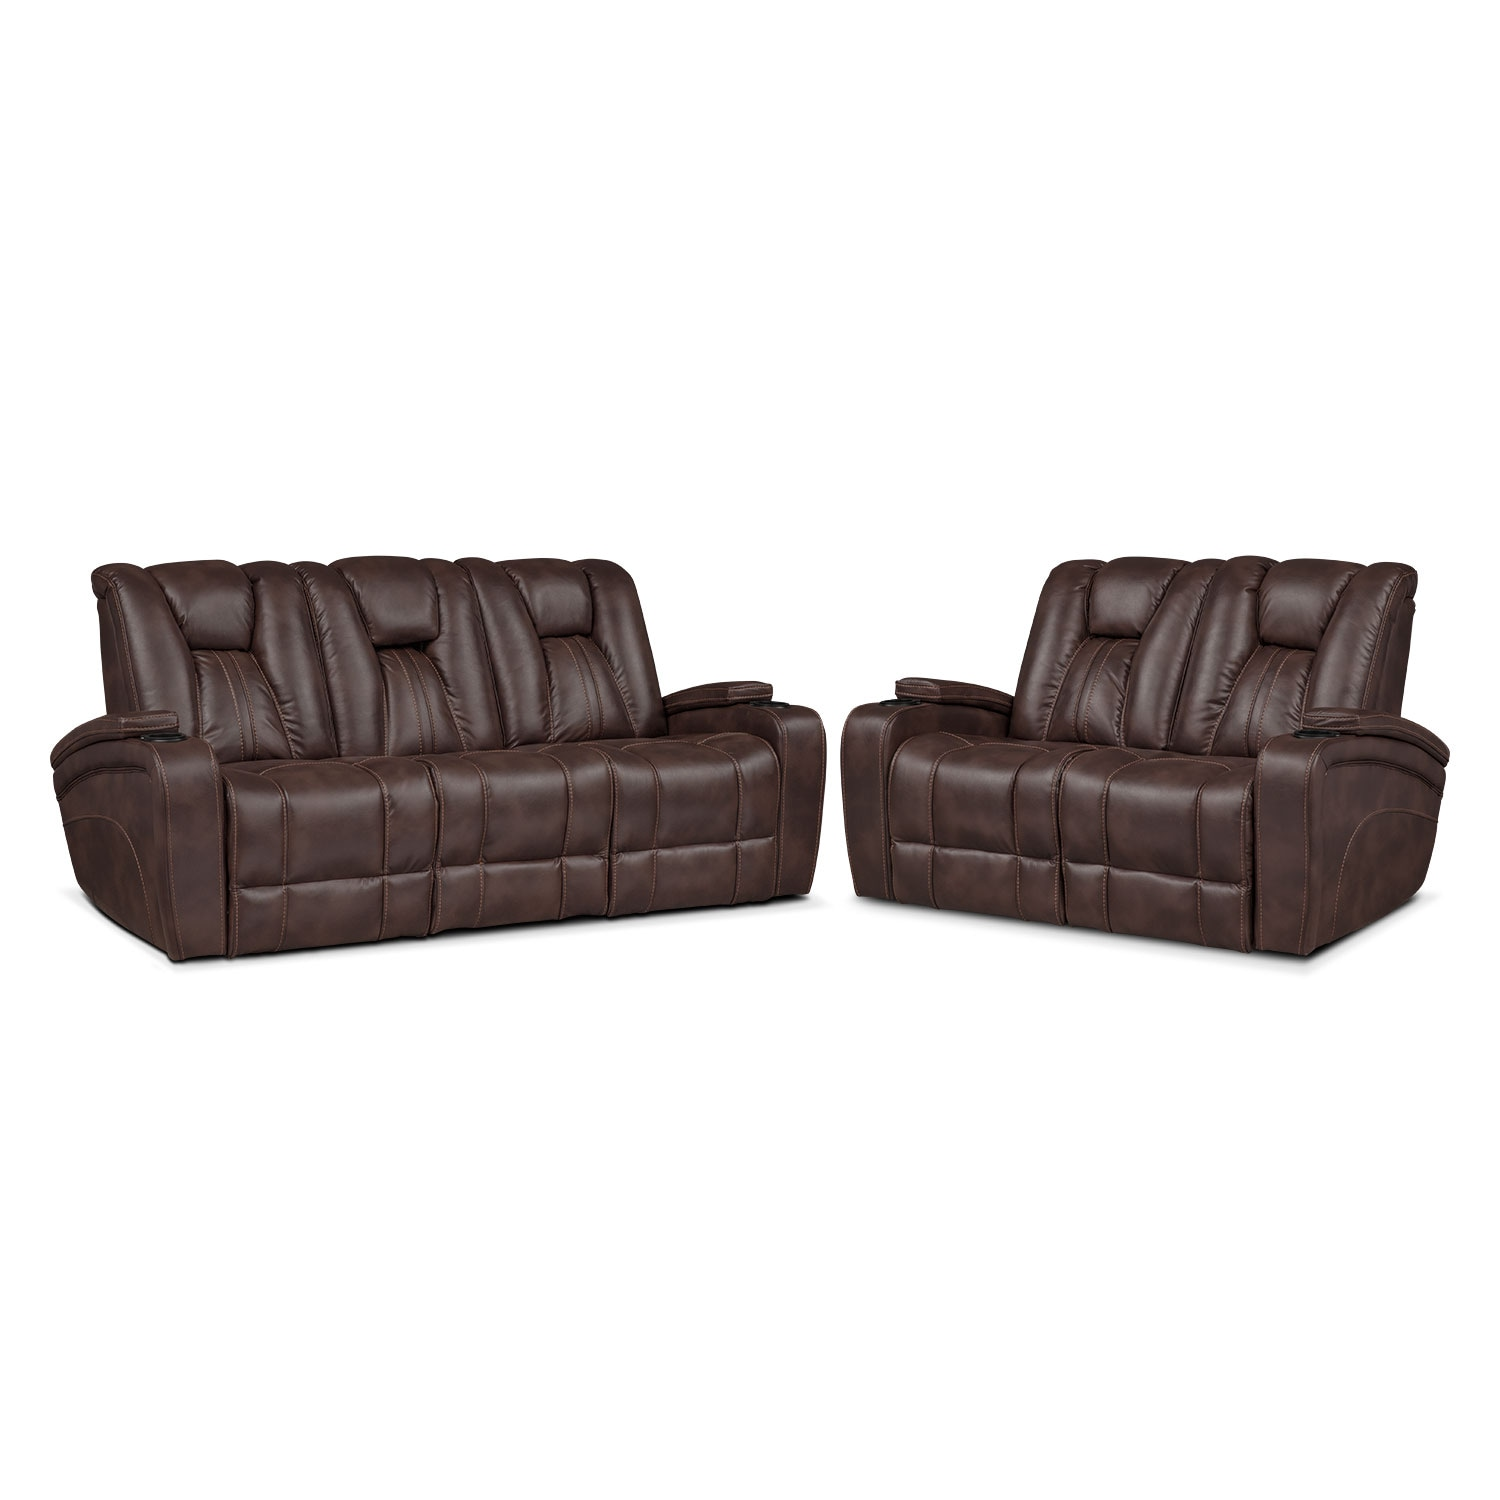 Pulsar Dual Power Reclining Sofa And Dual Power Reclining Loveseat Set Brown American